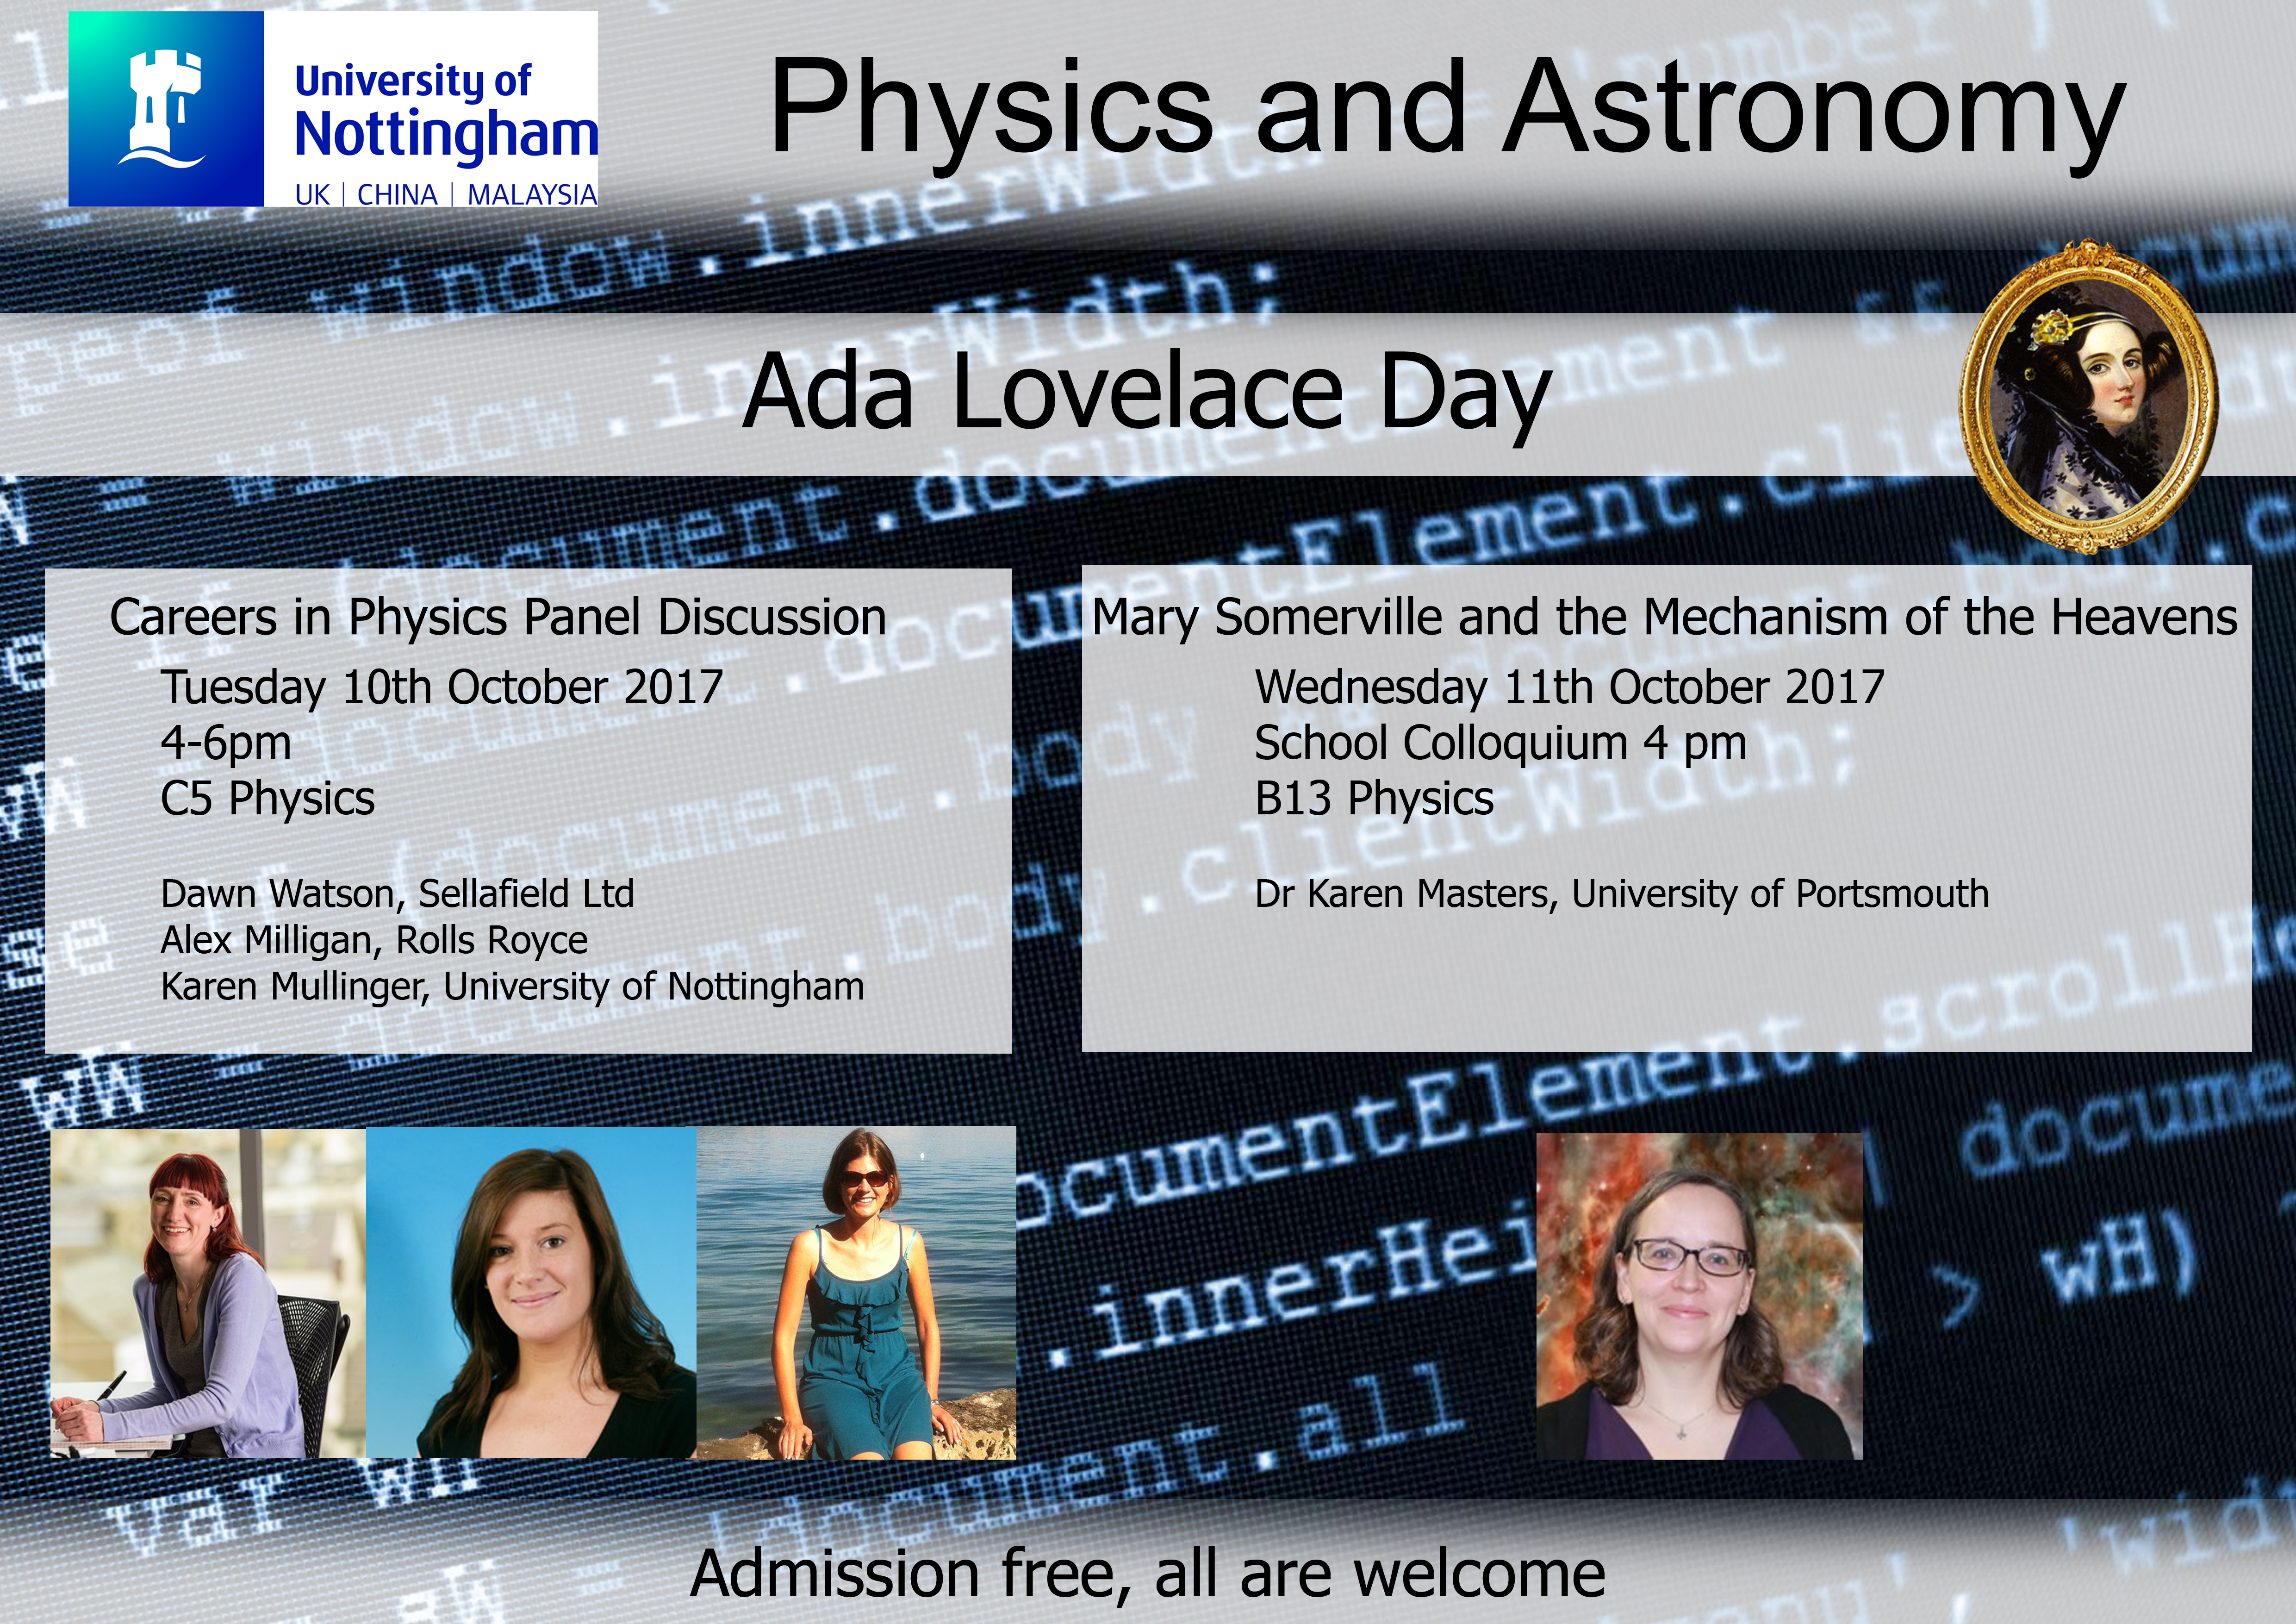 Poster describing details of Ada Lovelace Day celebrations at the University of Nottingham